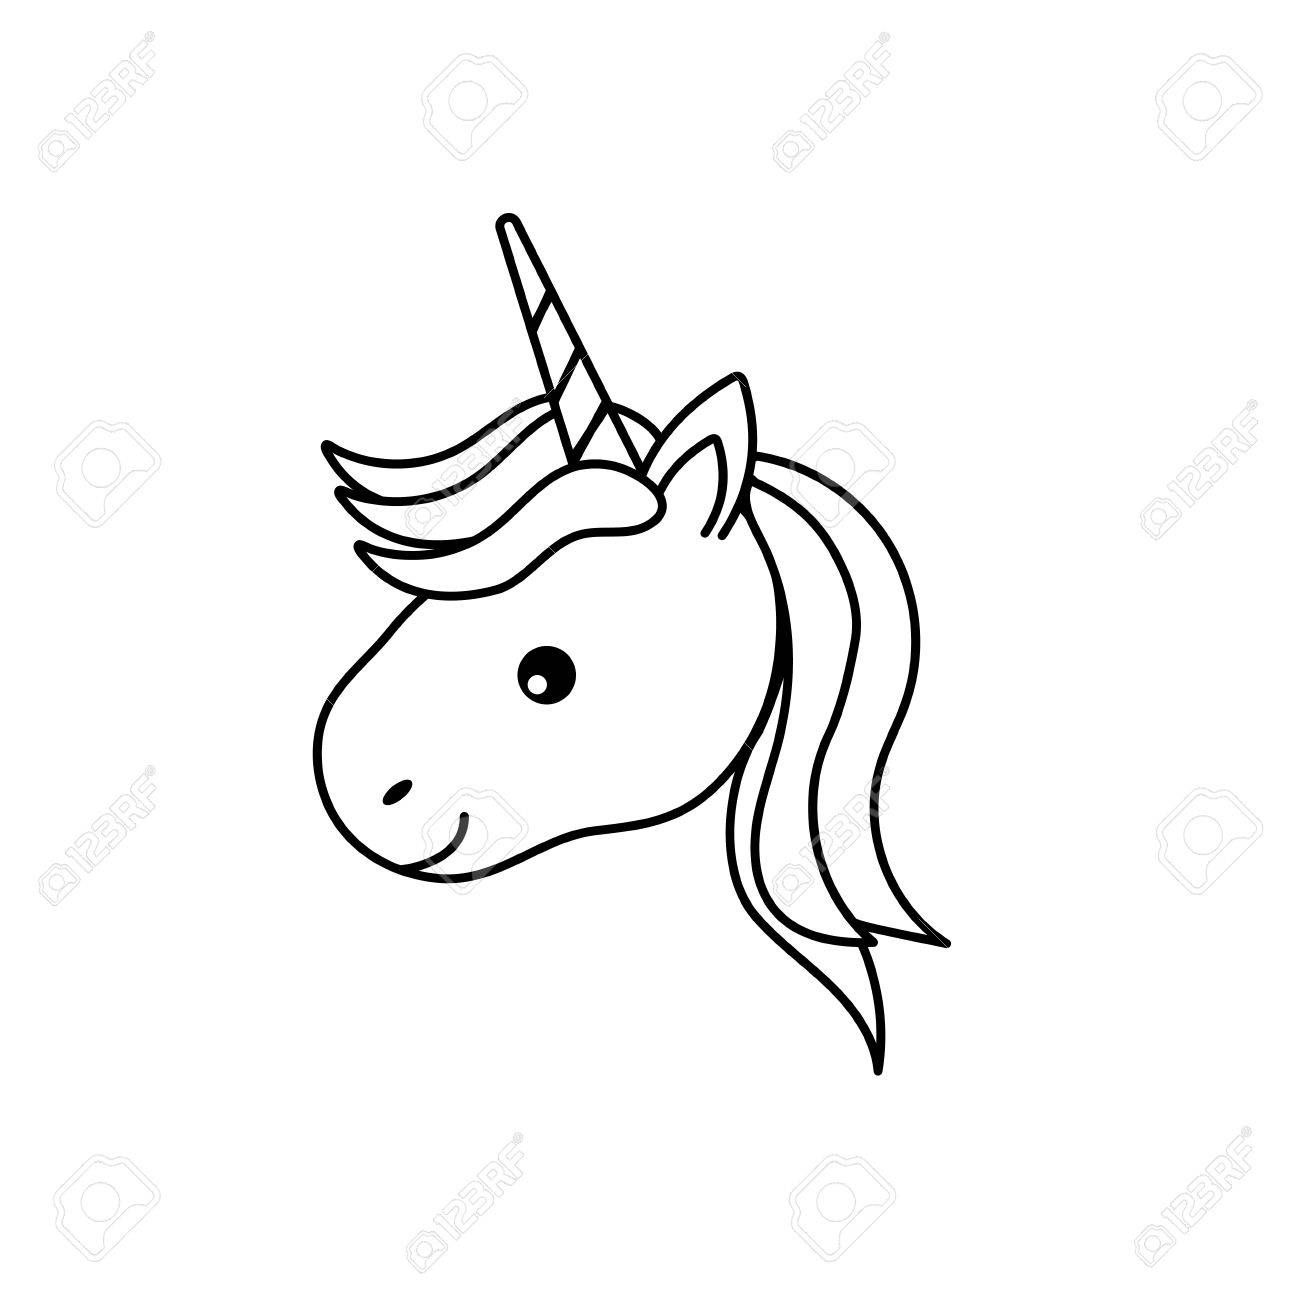 Image result for line drawing unicorn unicorn